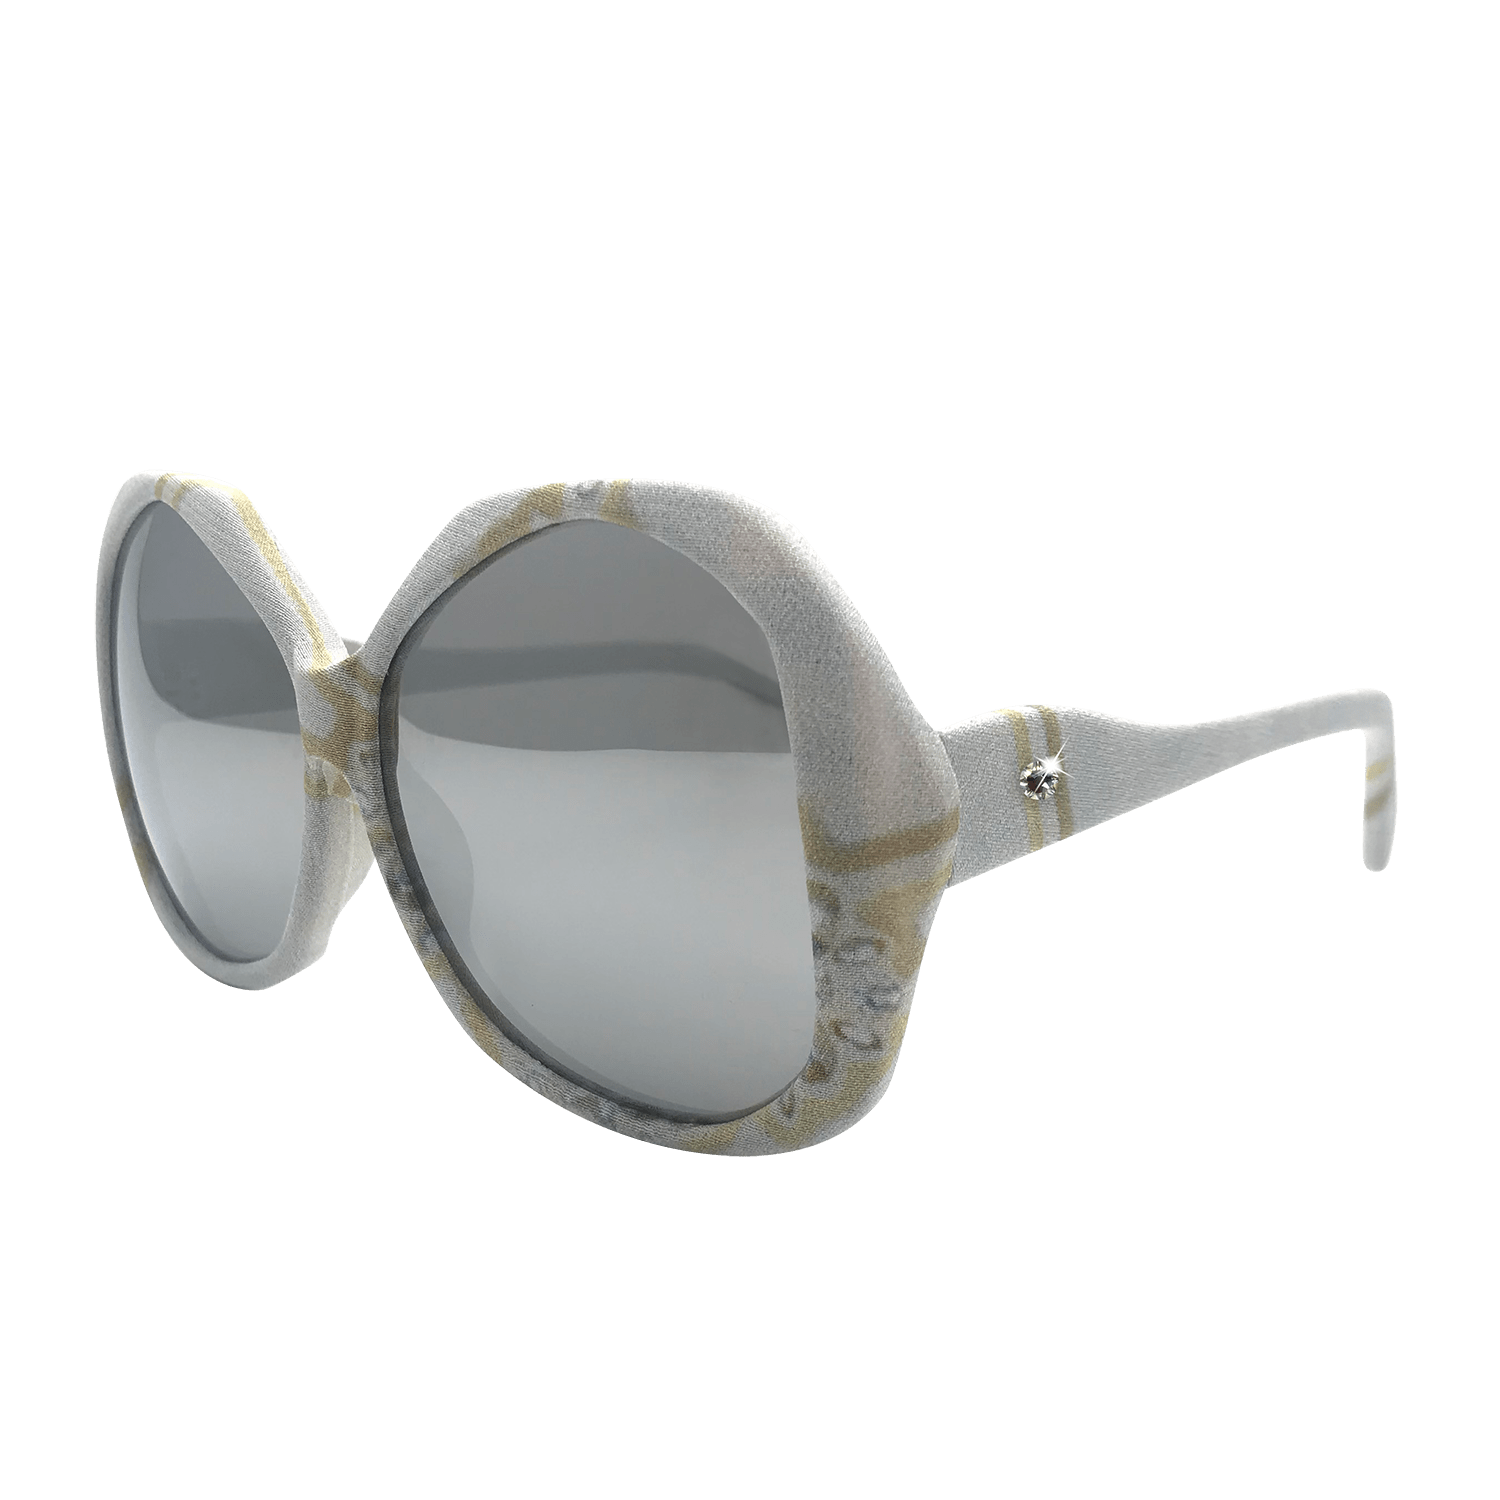 【SNOWFLAKE】Hand-made 100% Silk-wrapped Sunglasses UV400 - THE SPARKLE COLLECTION by GERMAN POOL